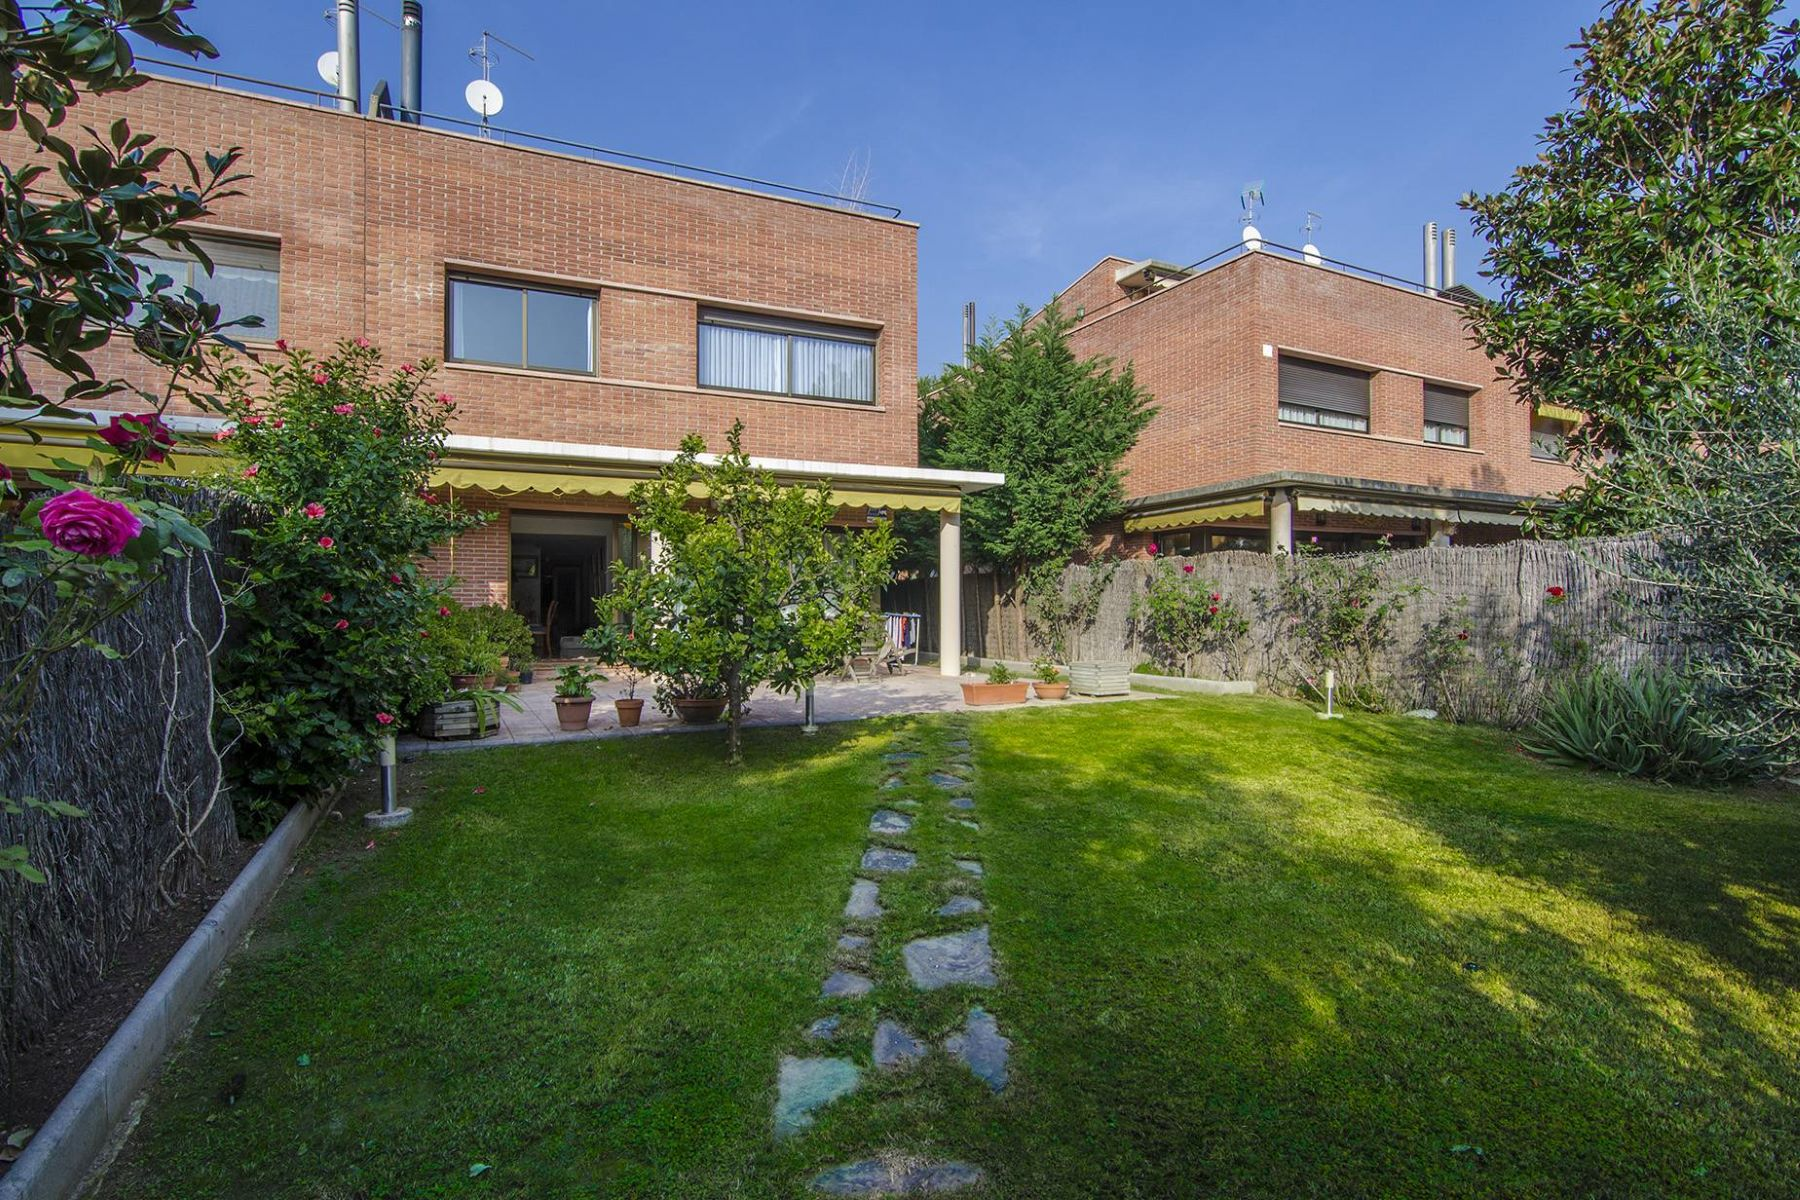 Single Family Home for Sale at Semi-detached house near the center Castelldefels, Barcelona, 08866 Spain